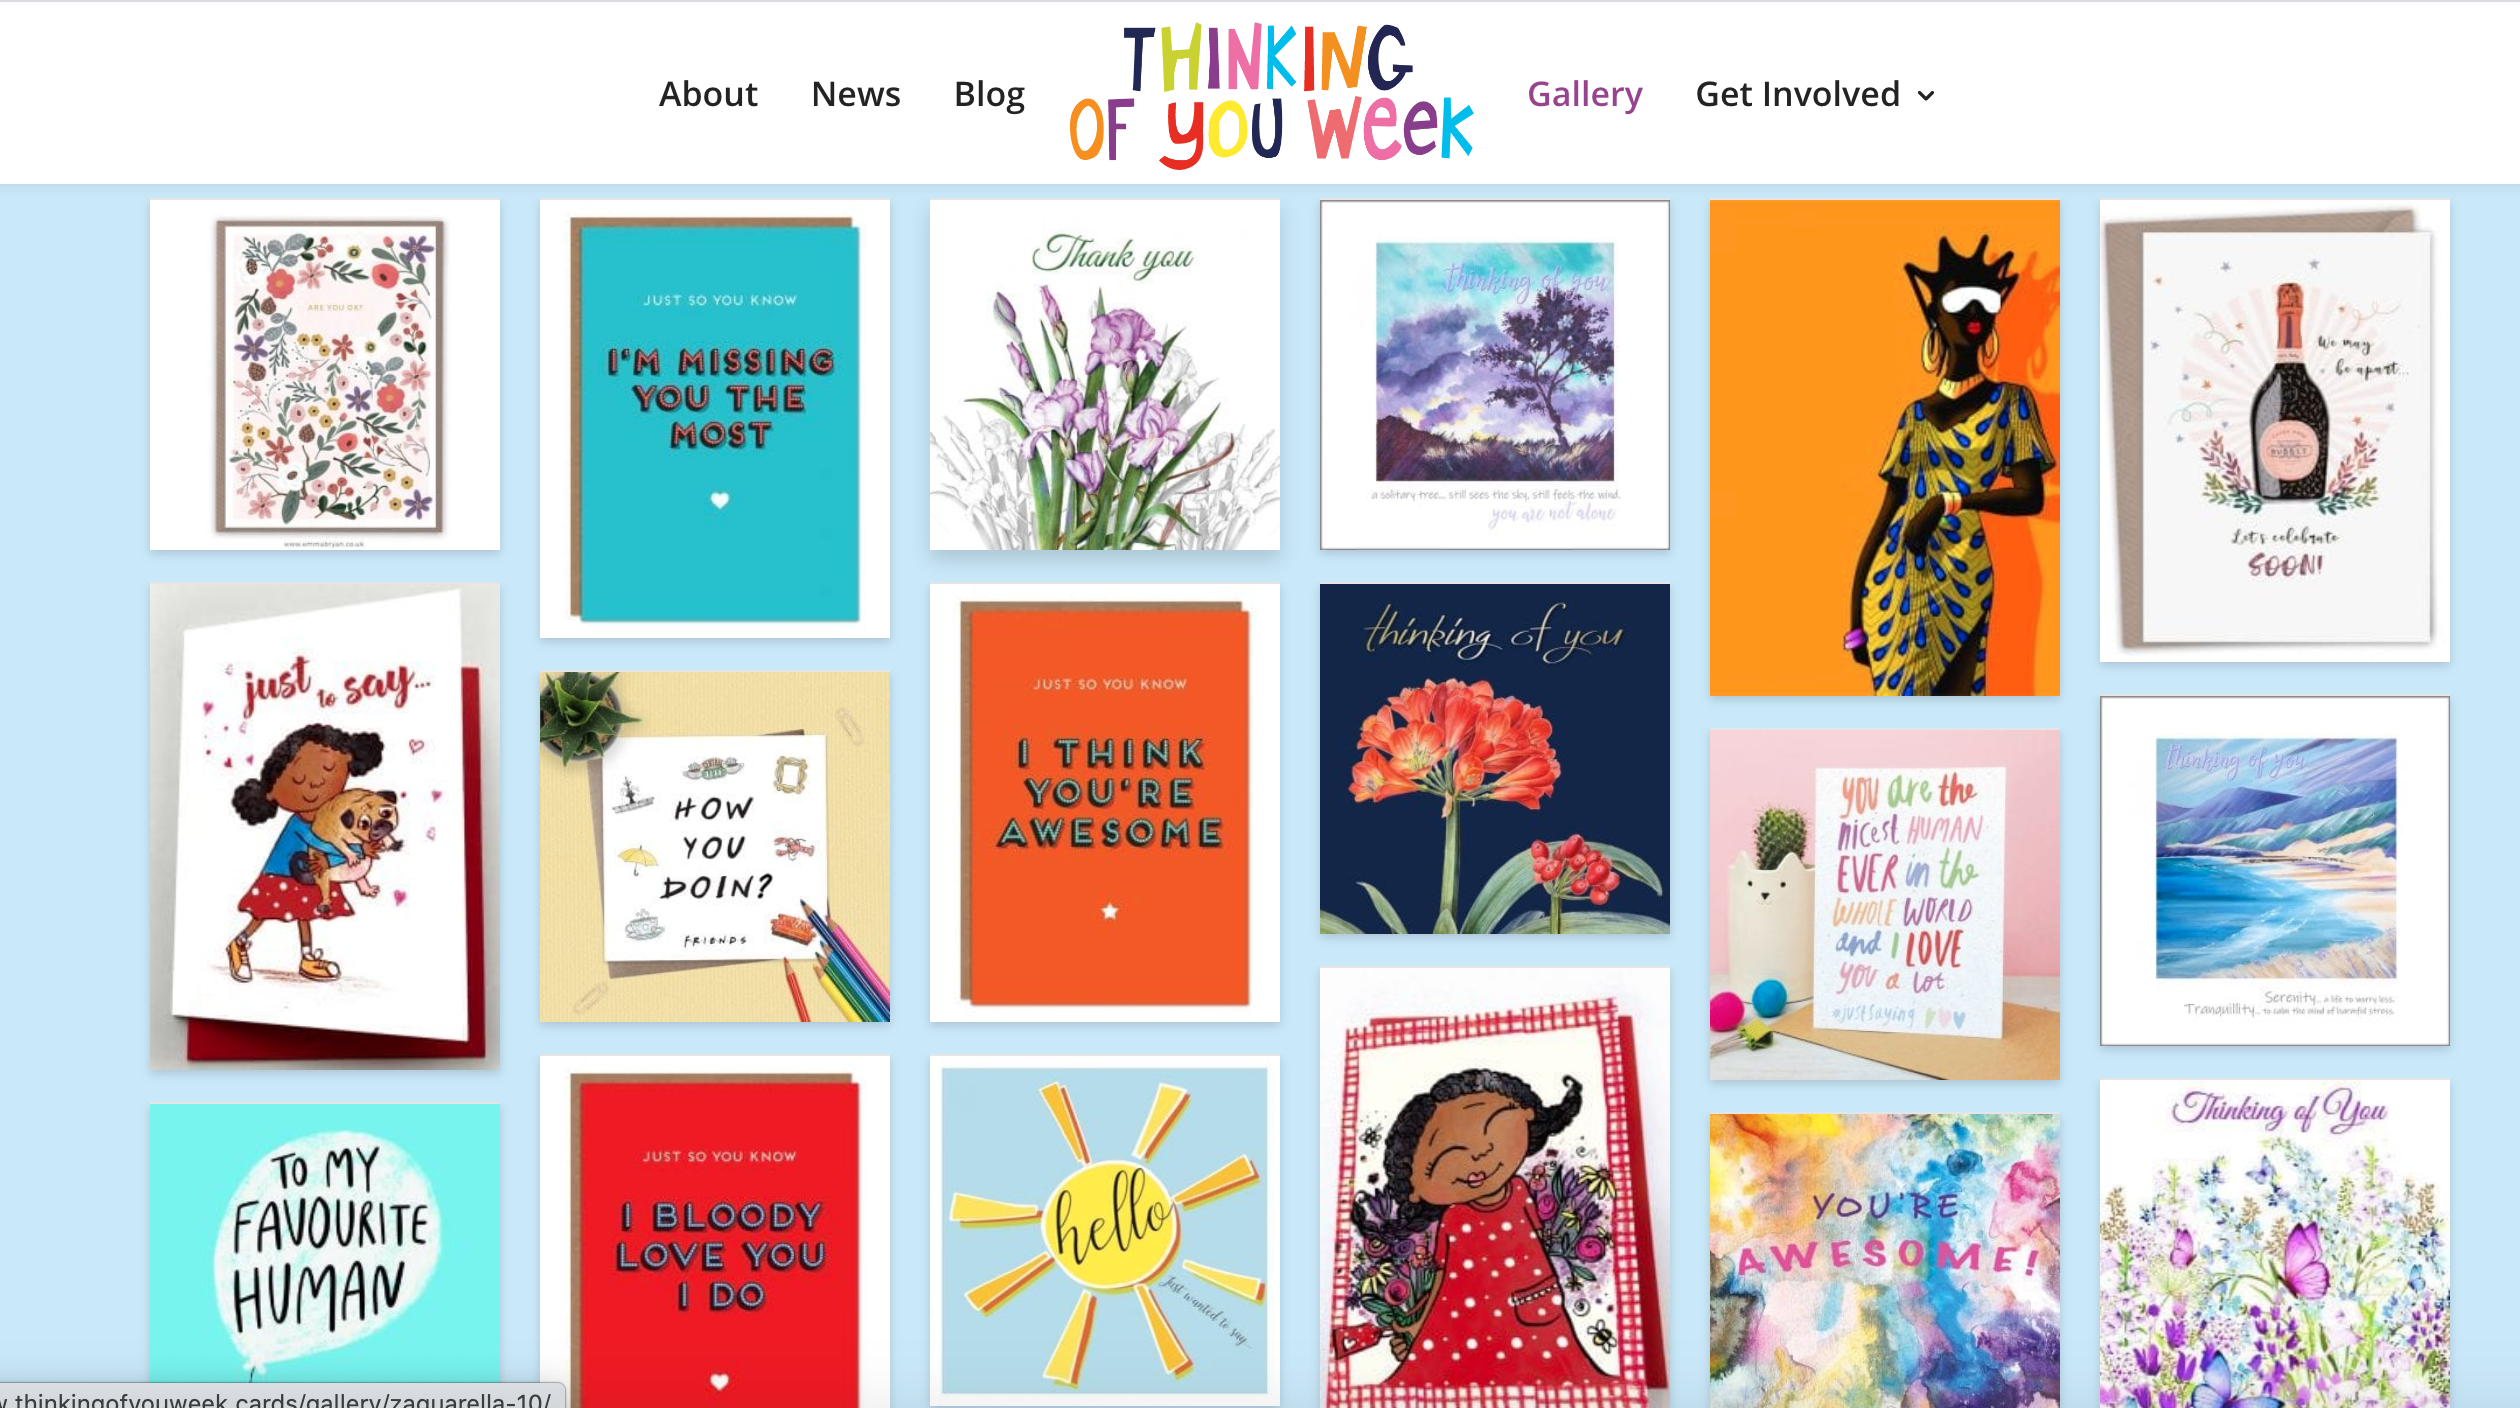 Above: Part of the Gallery section on the Thinking Of You Week website.